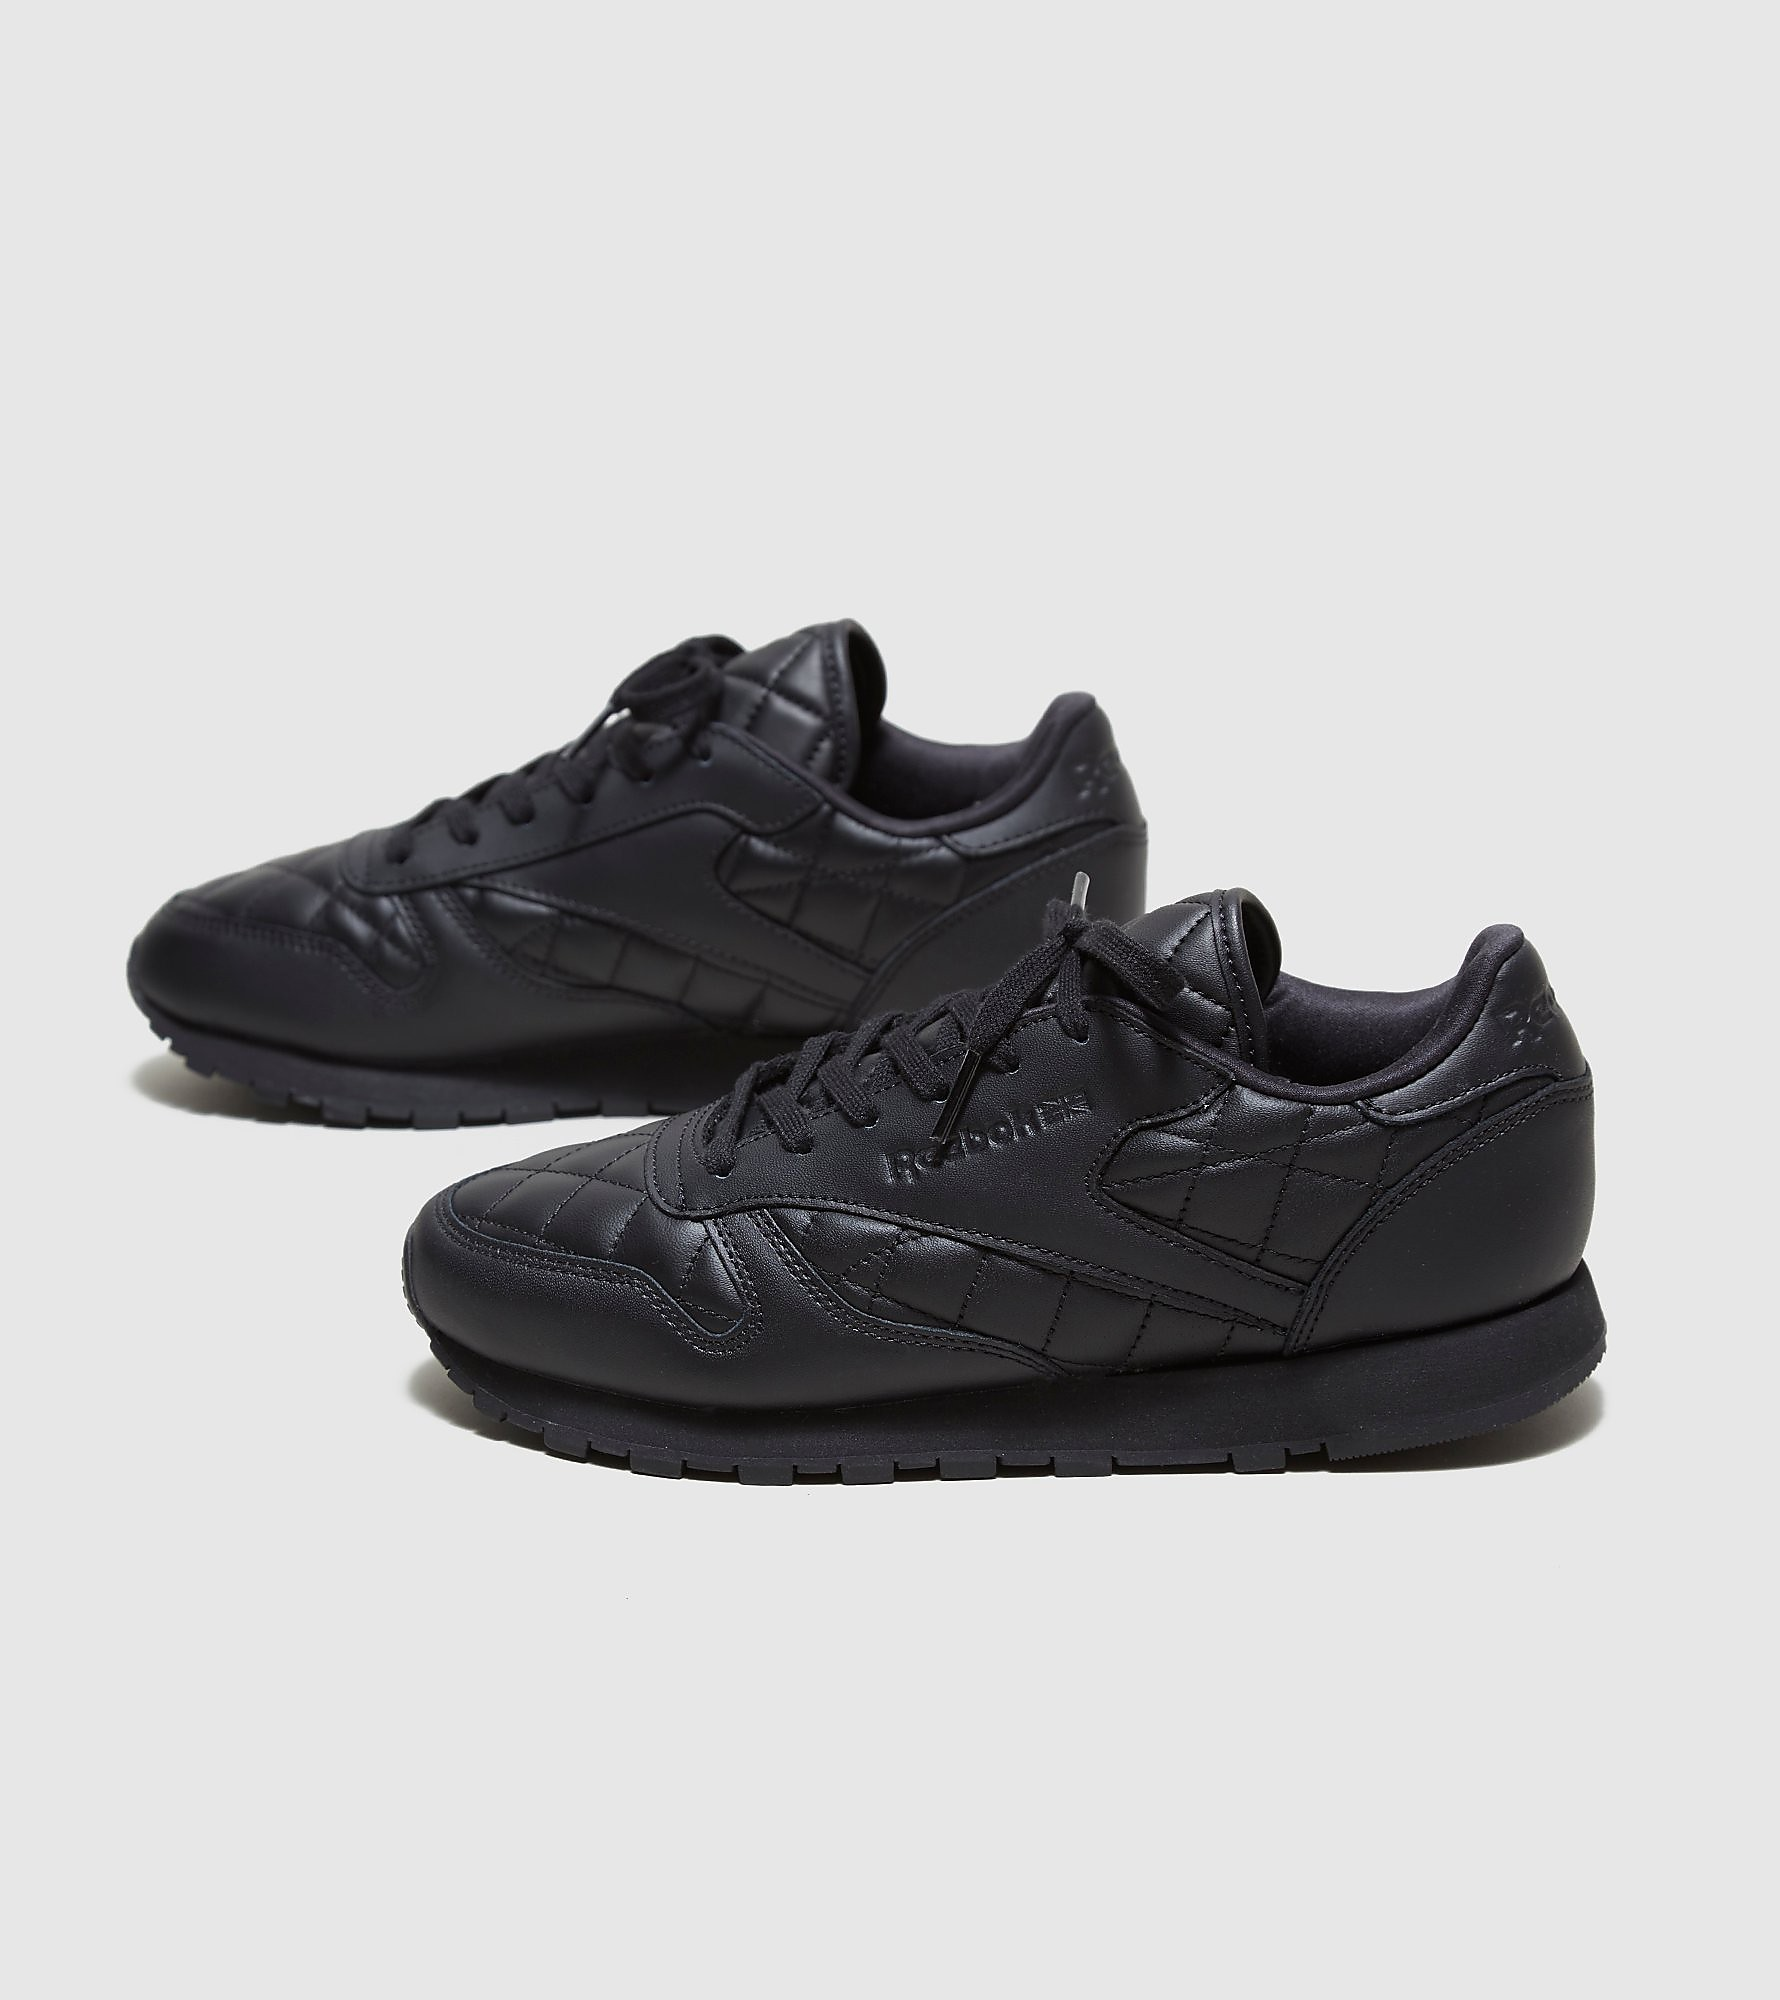 Reebok Classic Leather Quilted Pack Women's